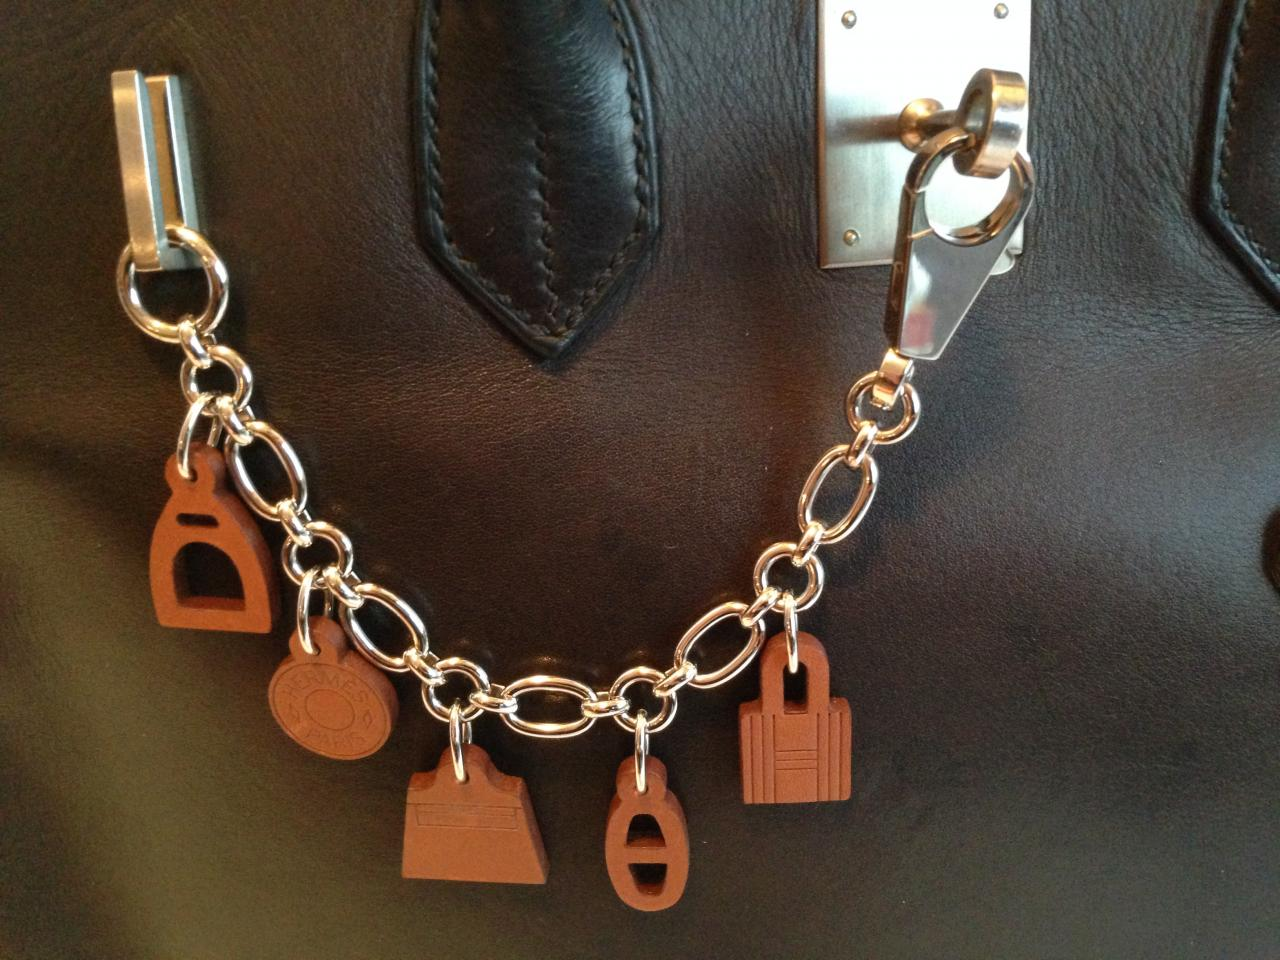 hermes bag price range - authentic-hermes-olga-berloque-barenia-bag-charm-silver-amulet-5-3.jpg